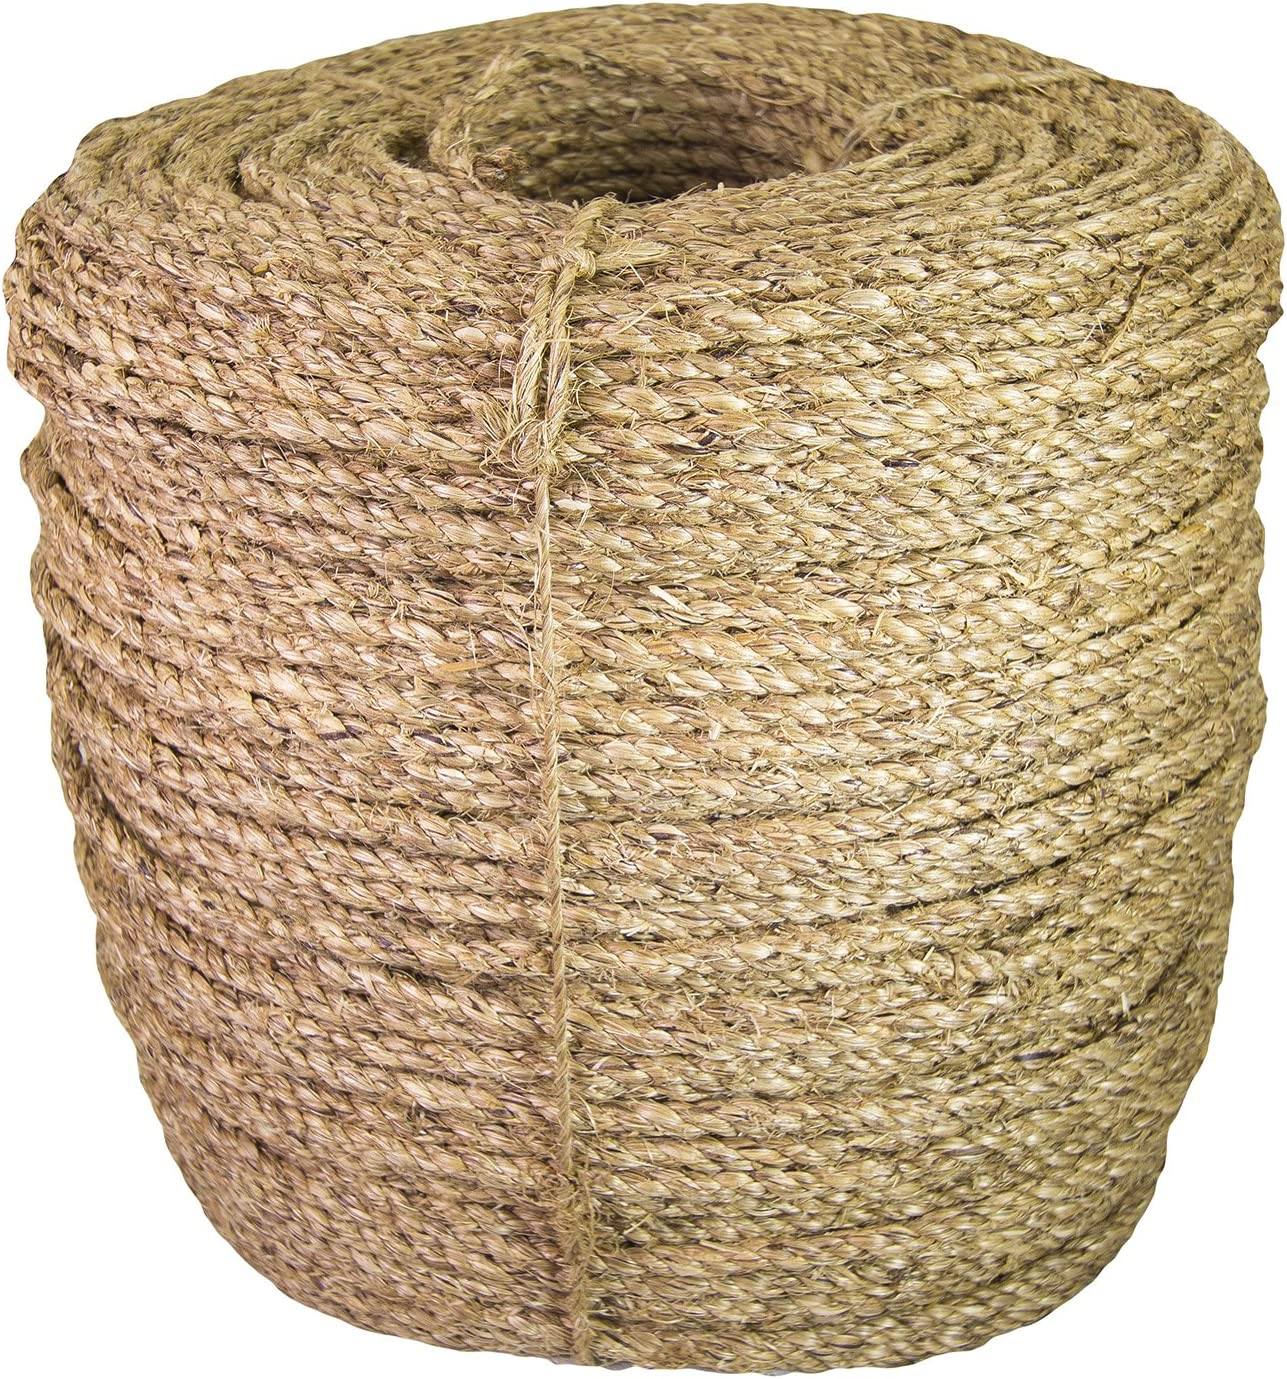 Ravenox Natural Manila Rope Cordage   Pre-Cut Lengths in Every Diameter Landscaping Decorations   Premium Twisted Cord for Climbing Tug of War or General Purpose 2 inch x 30 feet